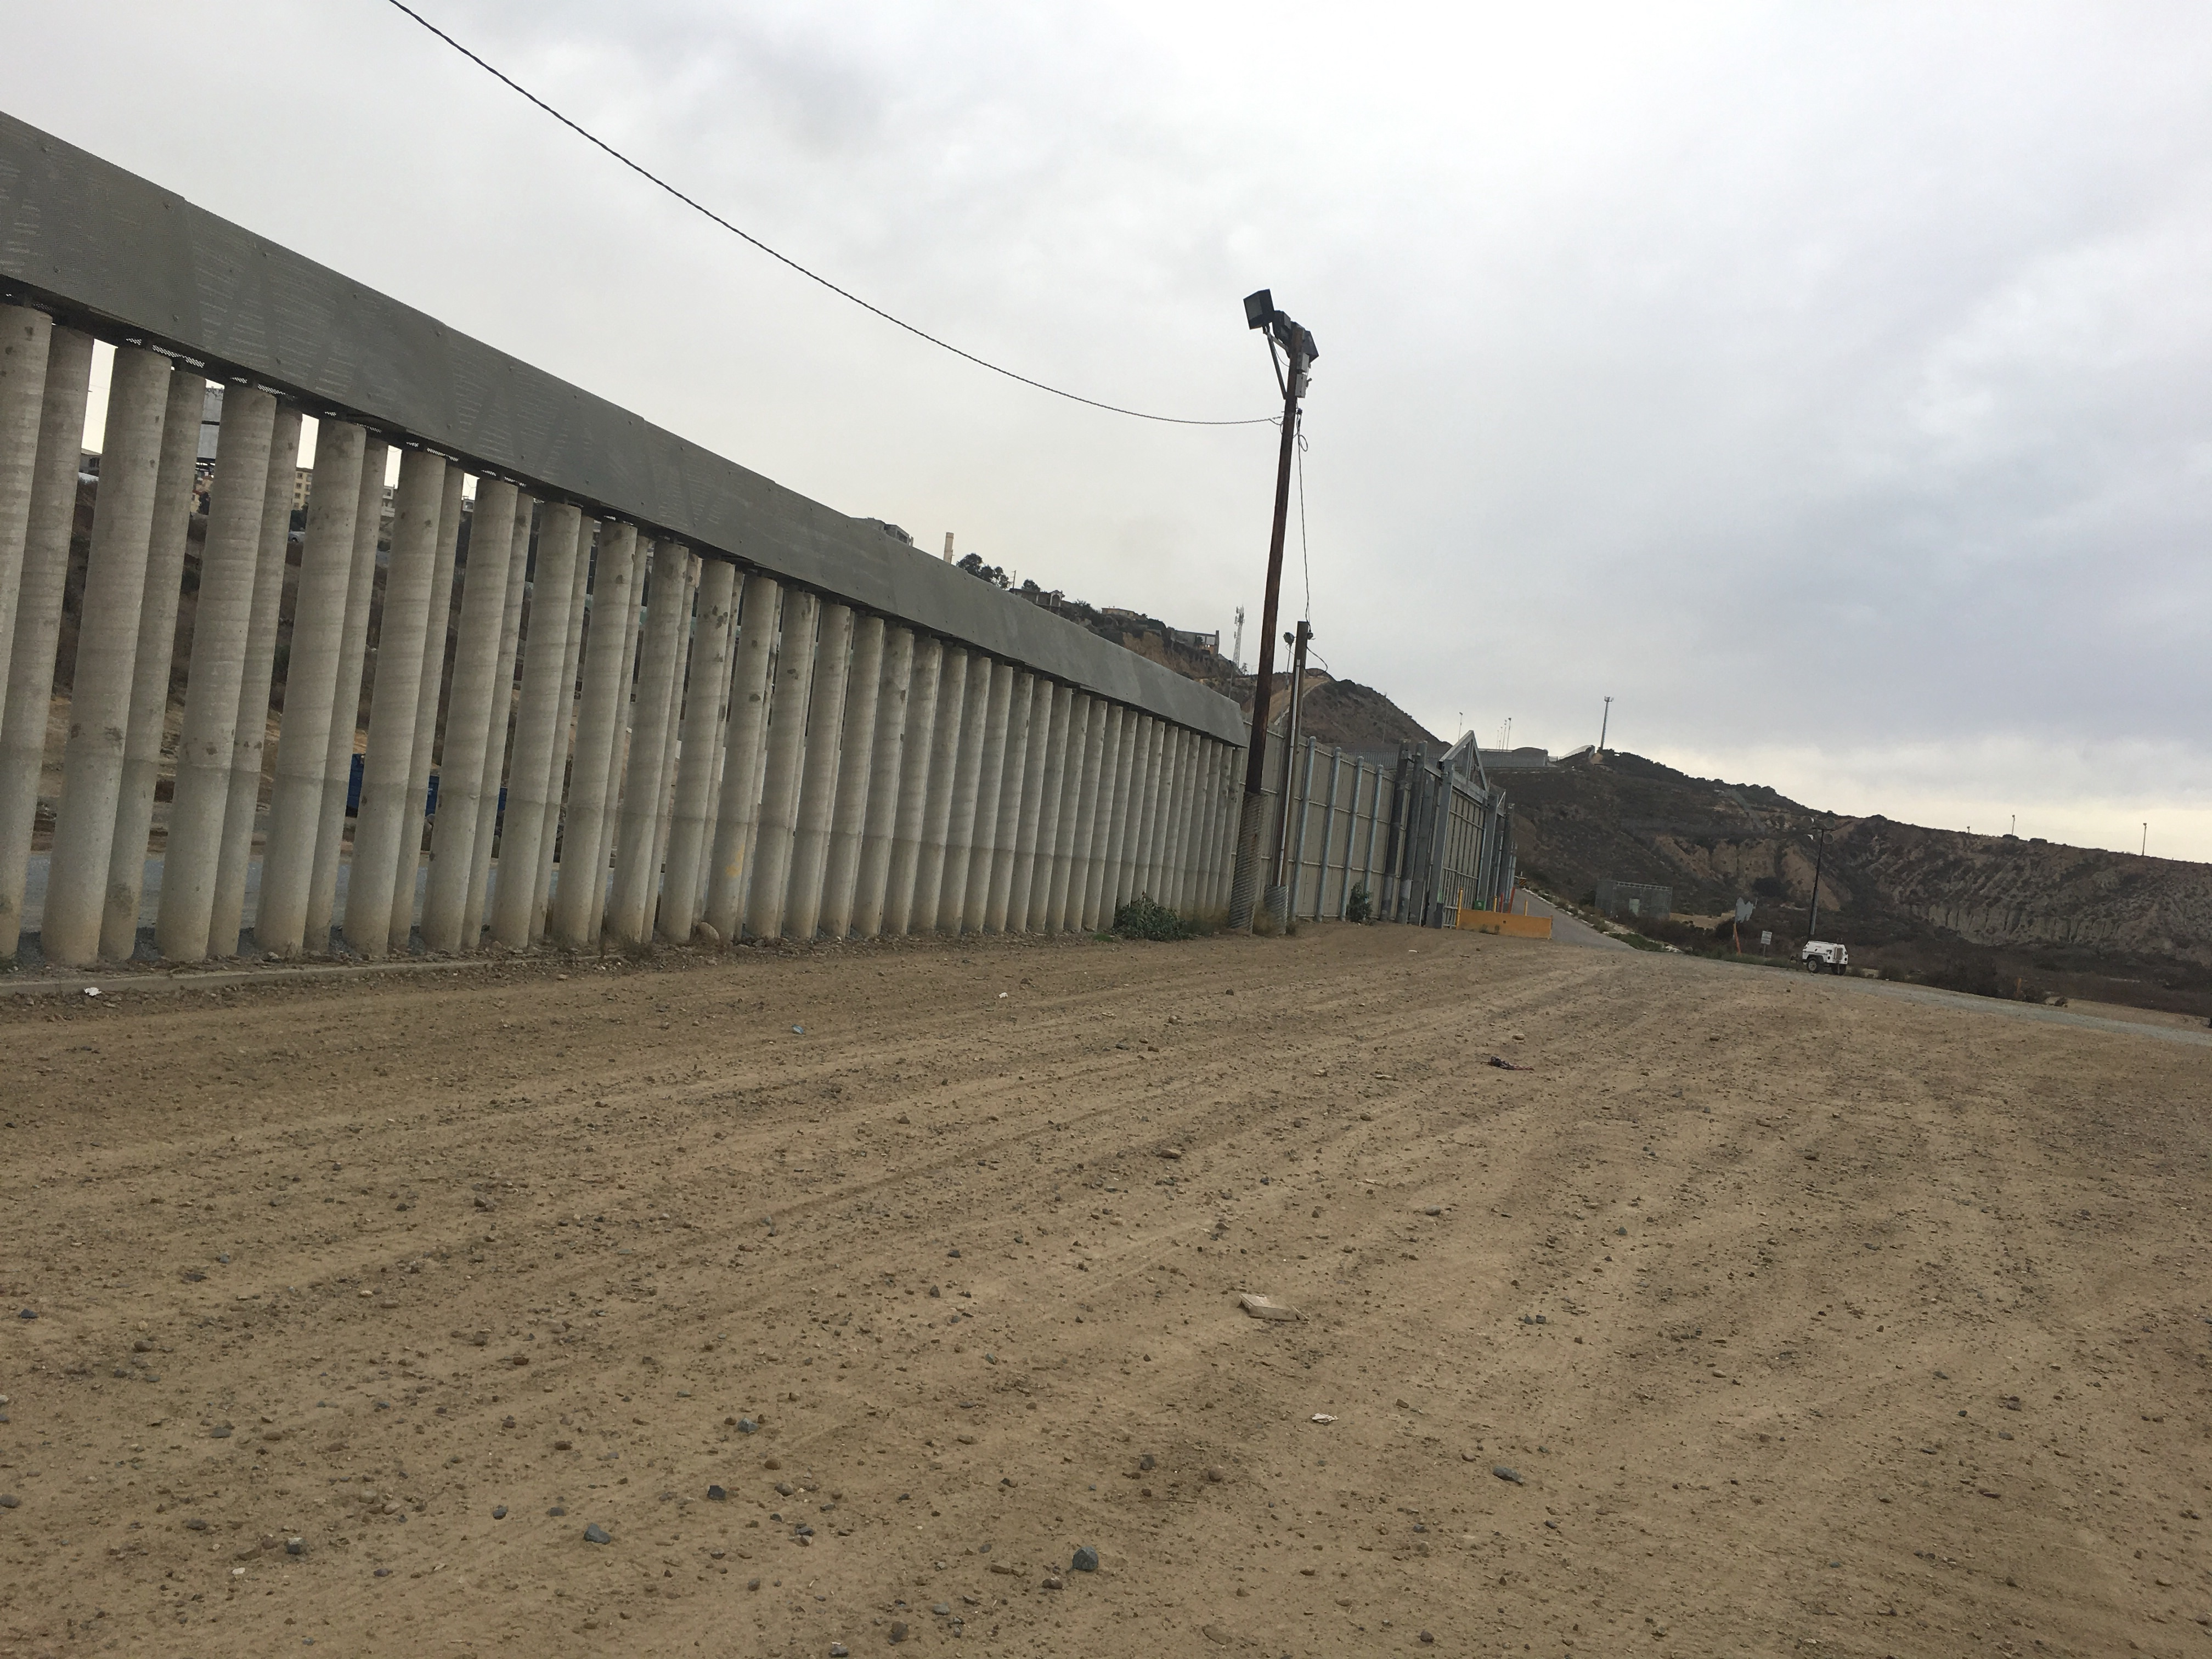 Various images of the US/Mexico Border on the US side. It is highly militarized with some sections having 2-3 border fences.